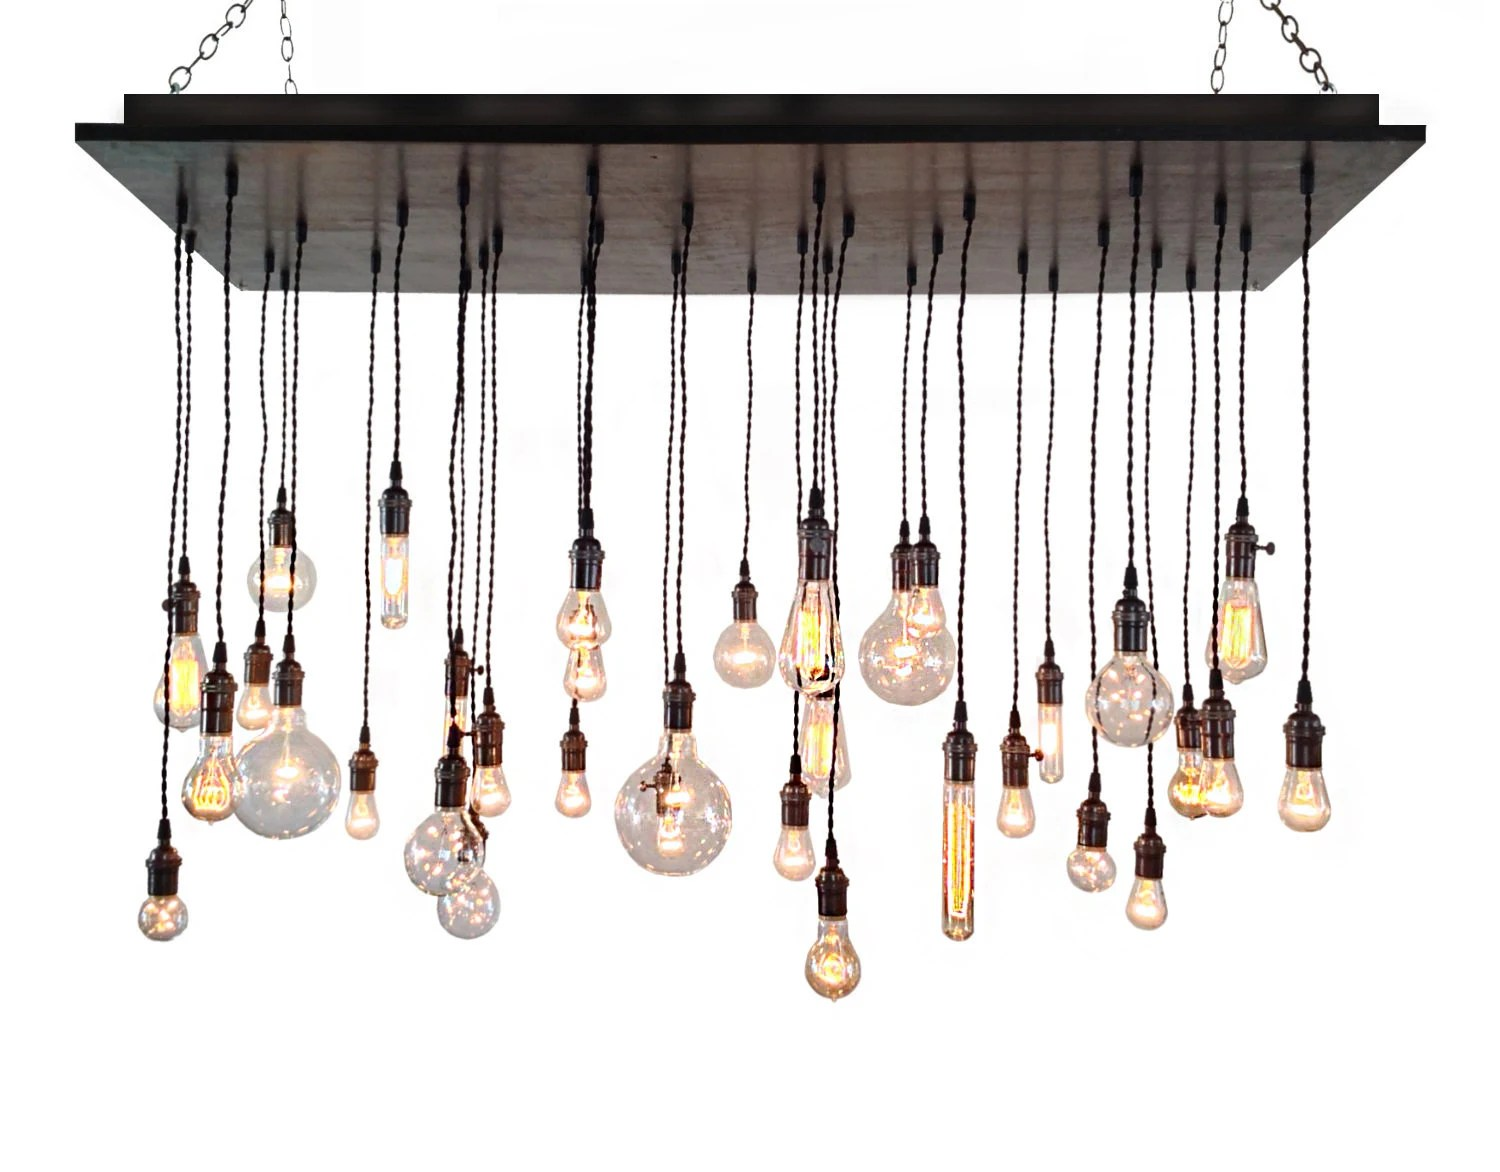 Modern Chandeliers Australia Industrial Chandelier Rustic Lighting Modern Chandelier Edison Bulbs Dining Room Lighting Urban Chandelier Wood Chandelier